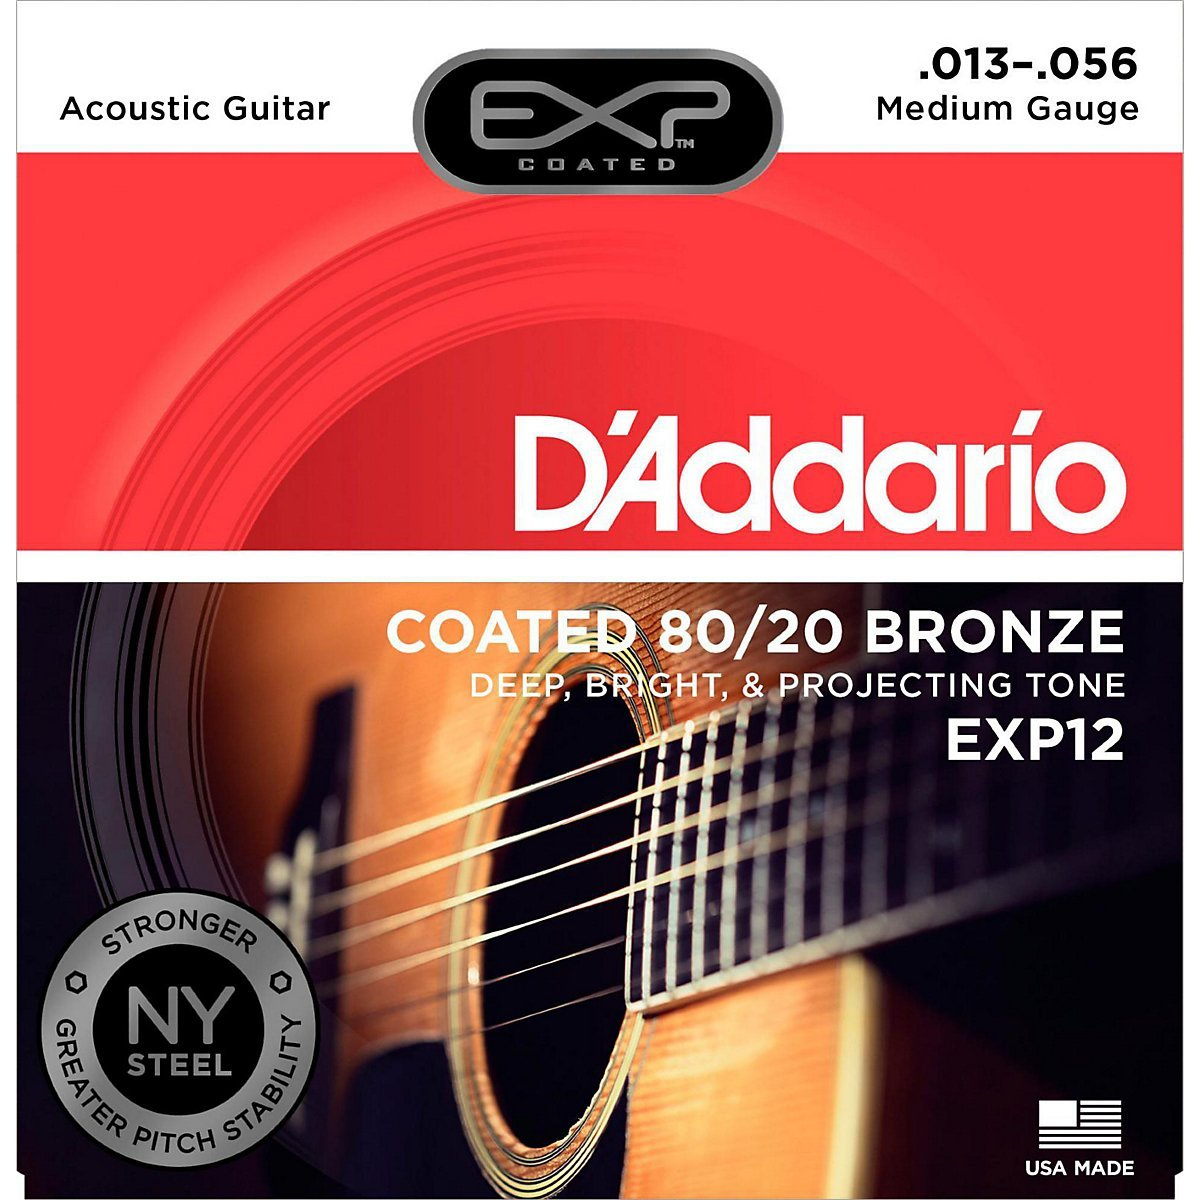 DAddario EXP12 with NY Steel 80/20 Bronze Acoustic Guitar Strings, Coated Medium, 13-56